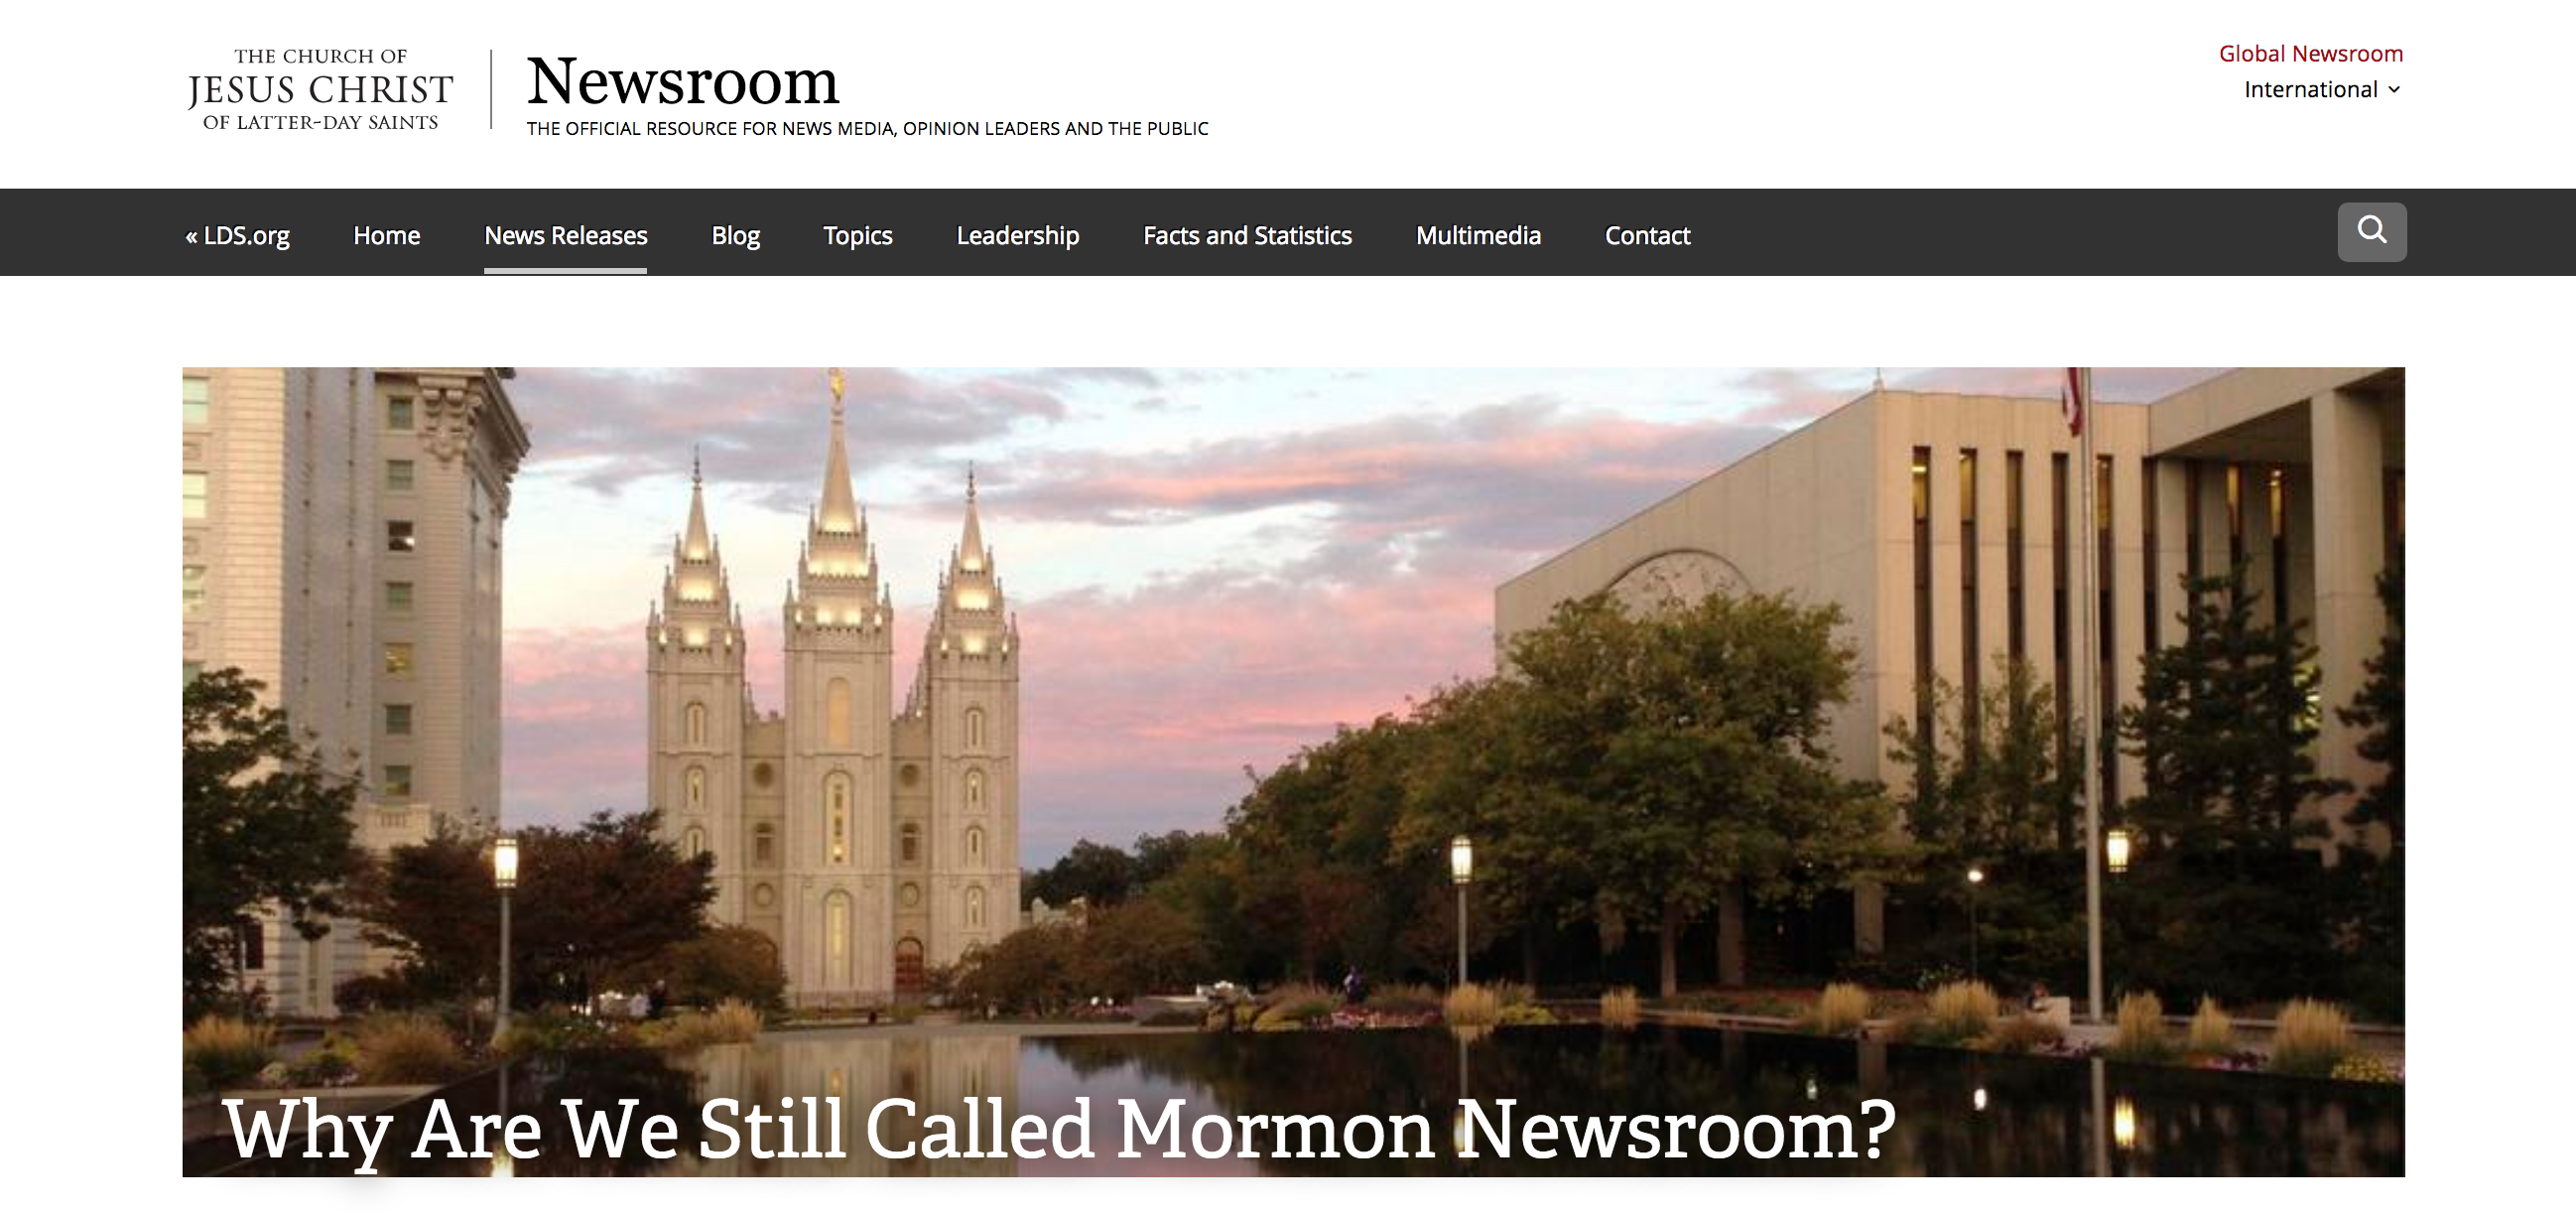 Newsroom responded to President Nelson's direction on referring to The Church of Jesus Christ of Latter-day Saints by its full name.